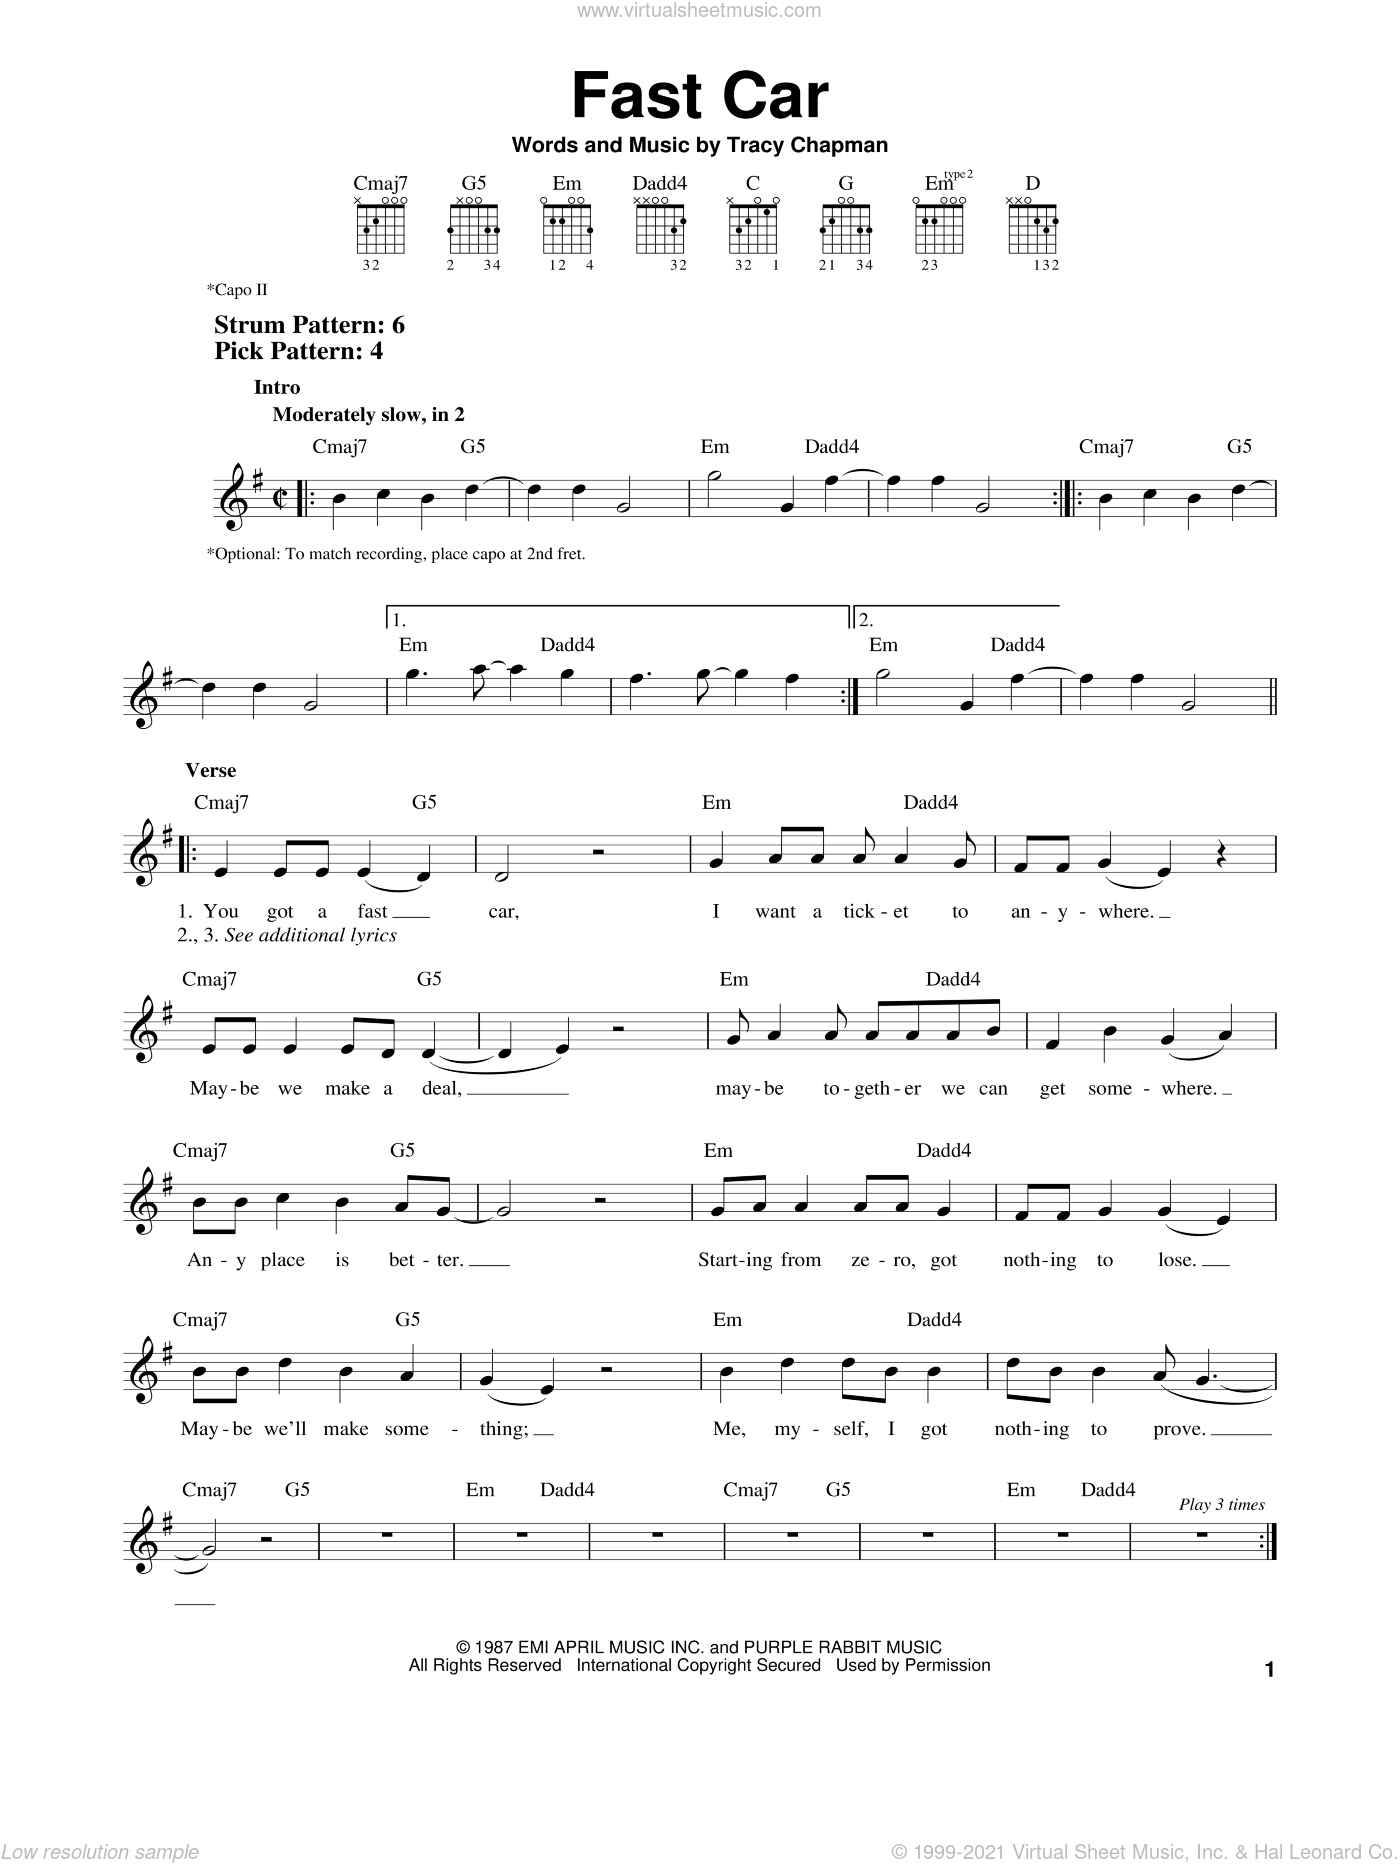 Fast Car sheet music for guitar solo (chords) by Tracy Chapman